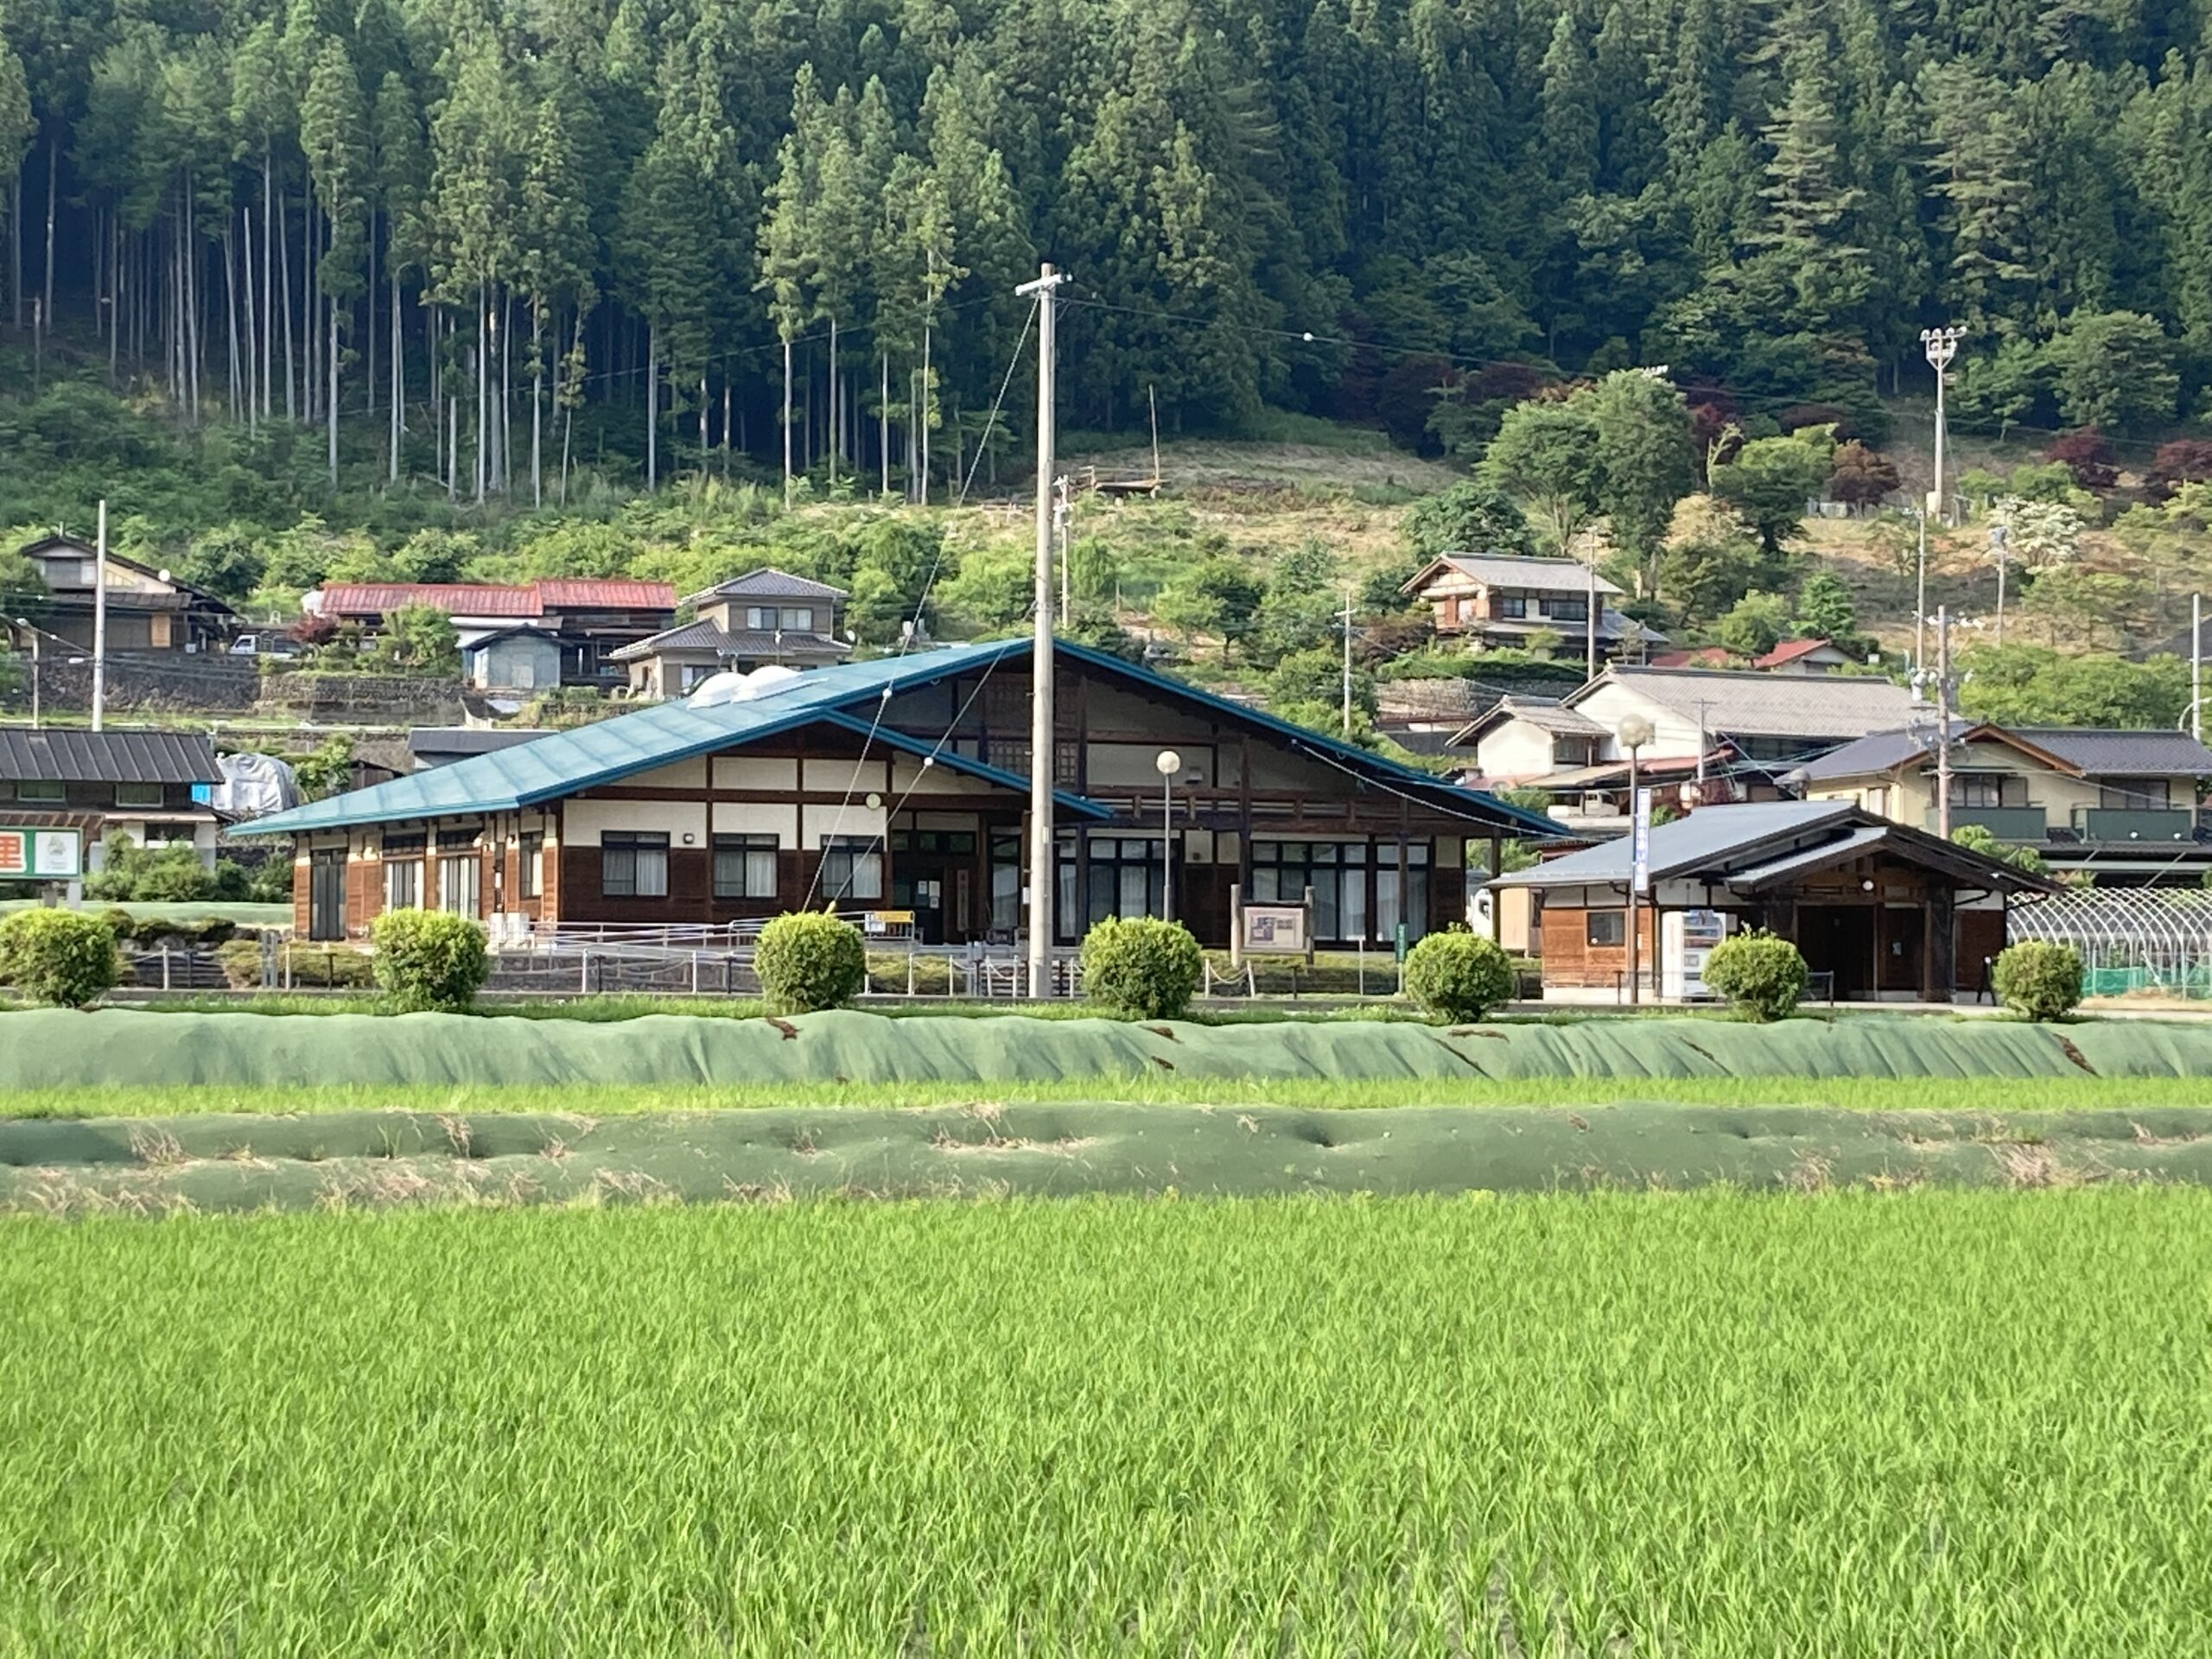 Read more about the article 2021年ぎふ清流馬瀬川アユ釣り大会参加申込終了